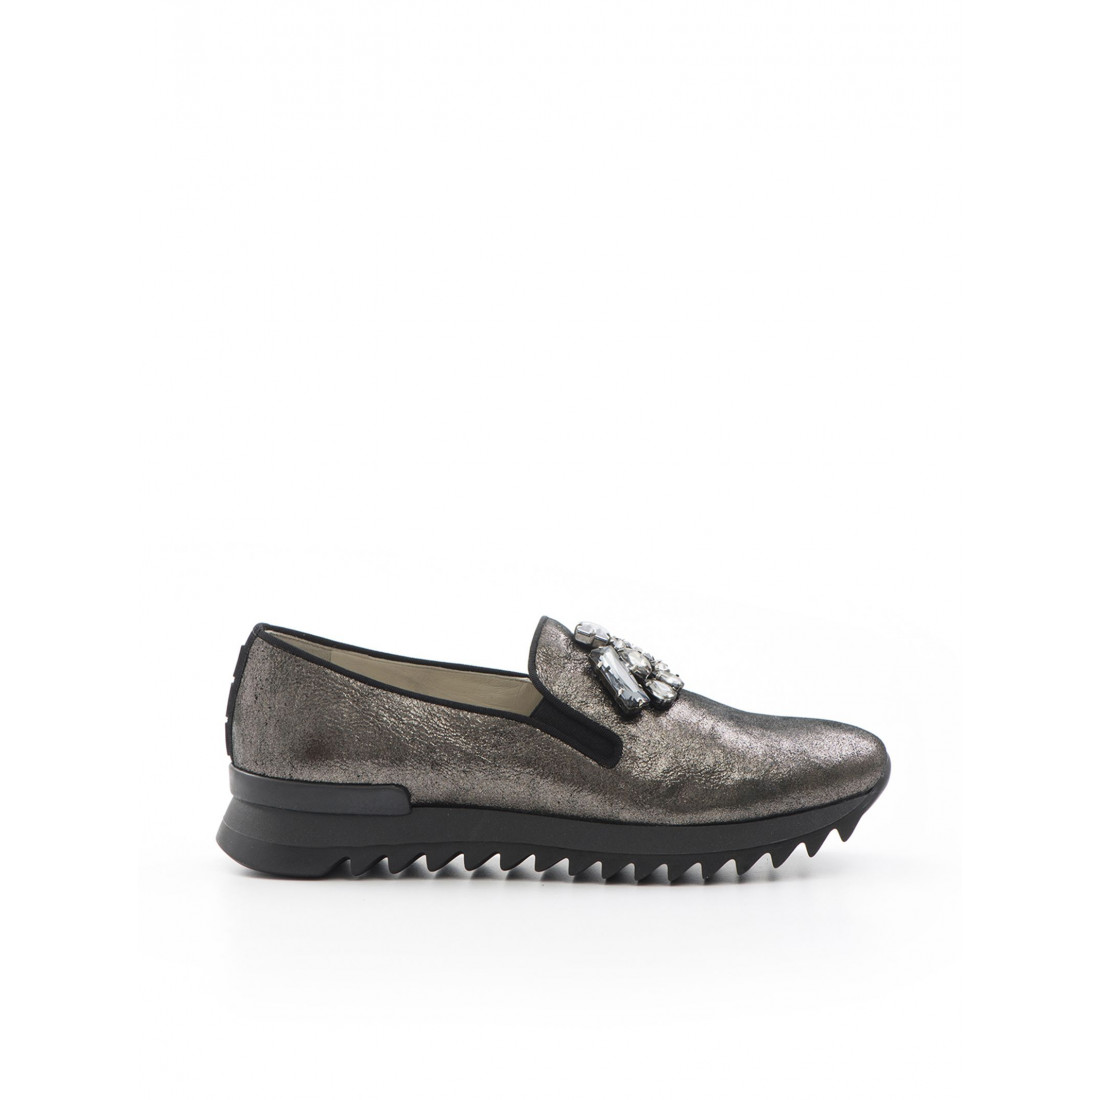 slip on donna 181 graceeclissi talpa